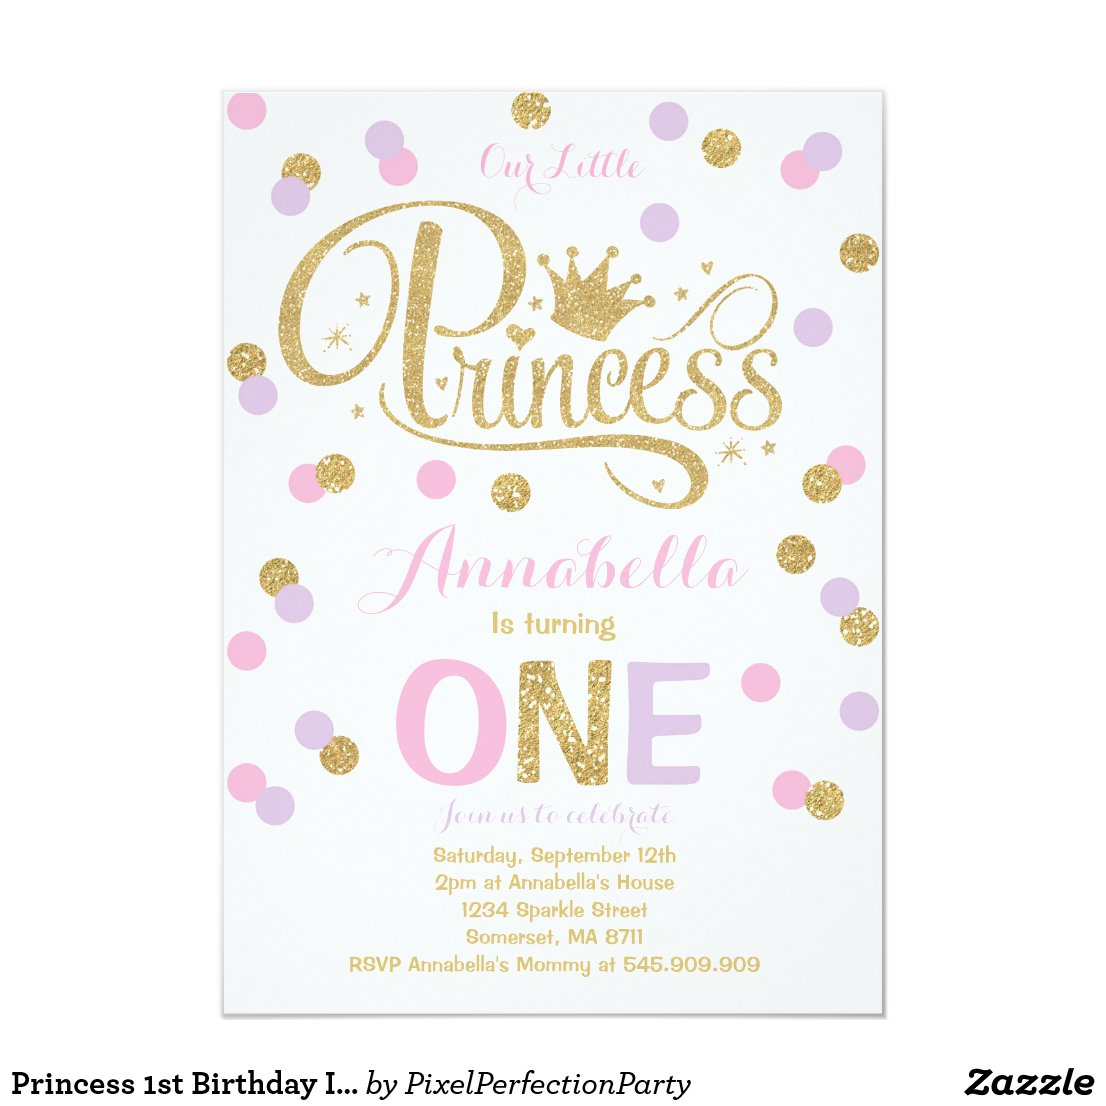 Princess 1st Birthday Invitation Pink Purple Gold